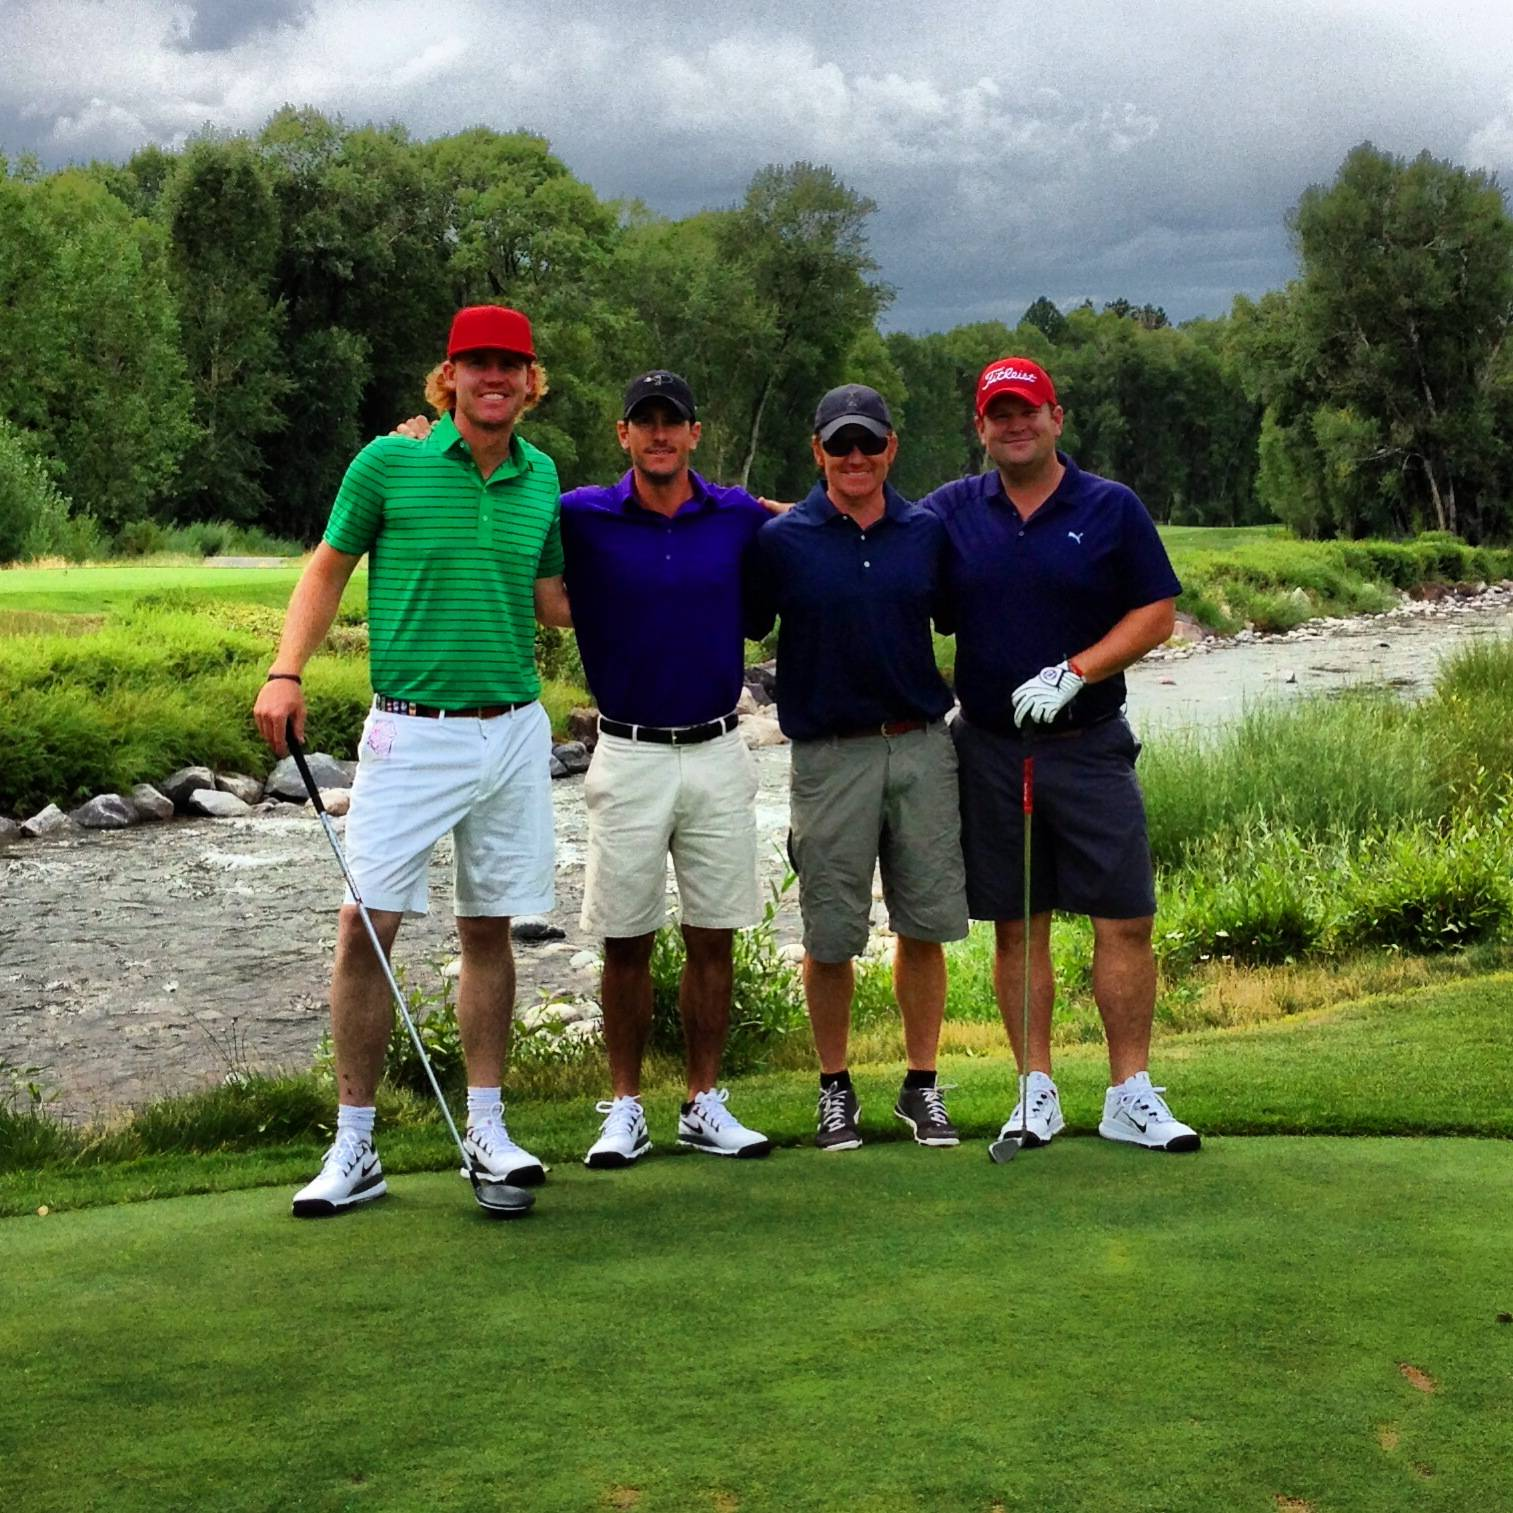 Roldan and friends golding at the Roaring Fork Club